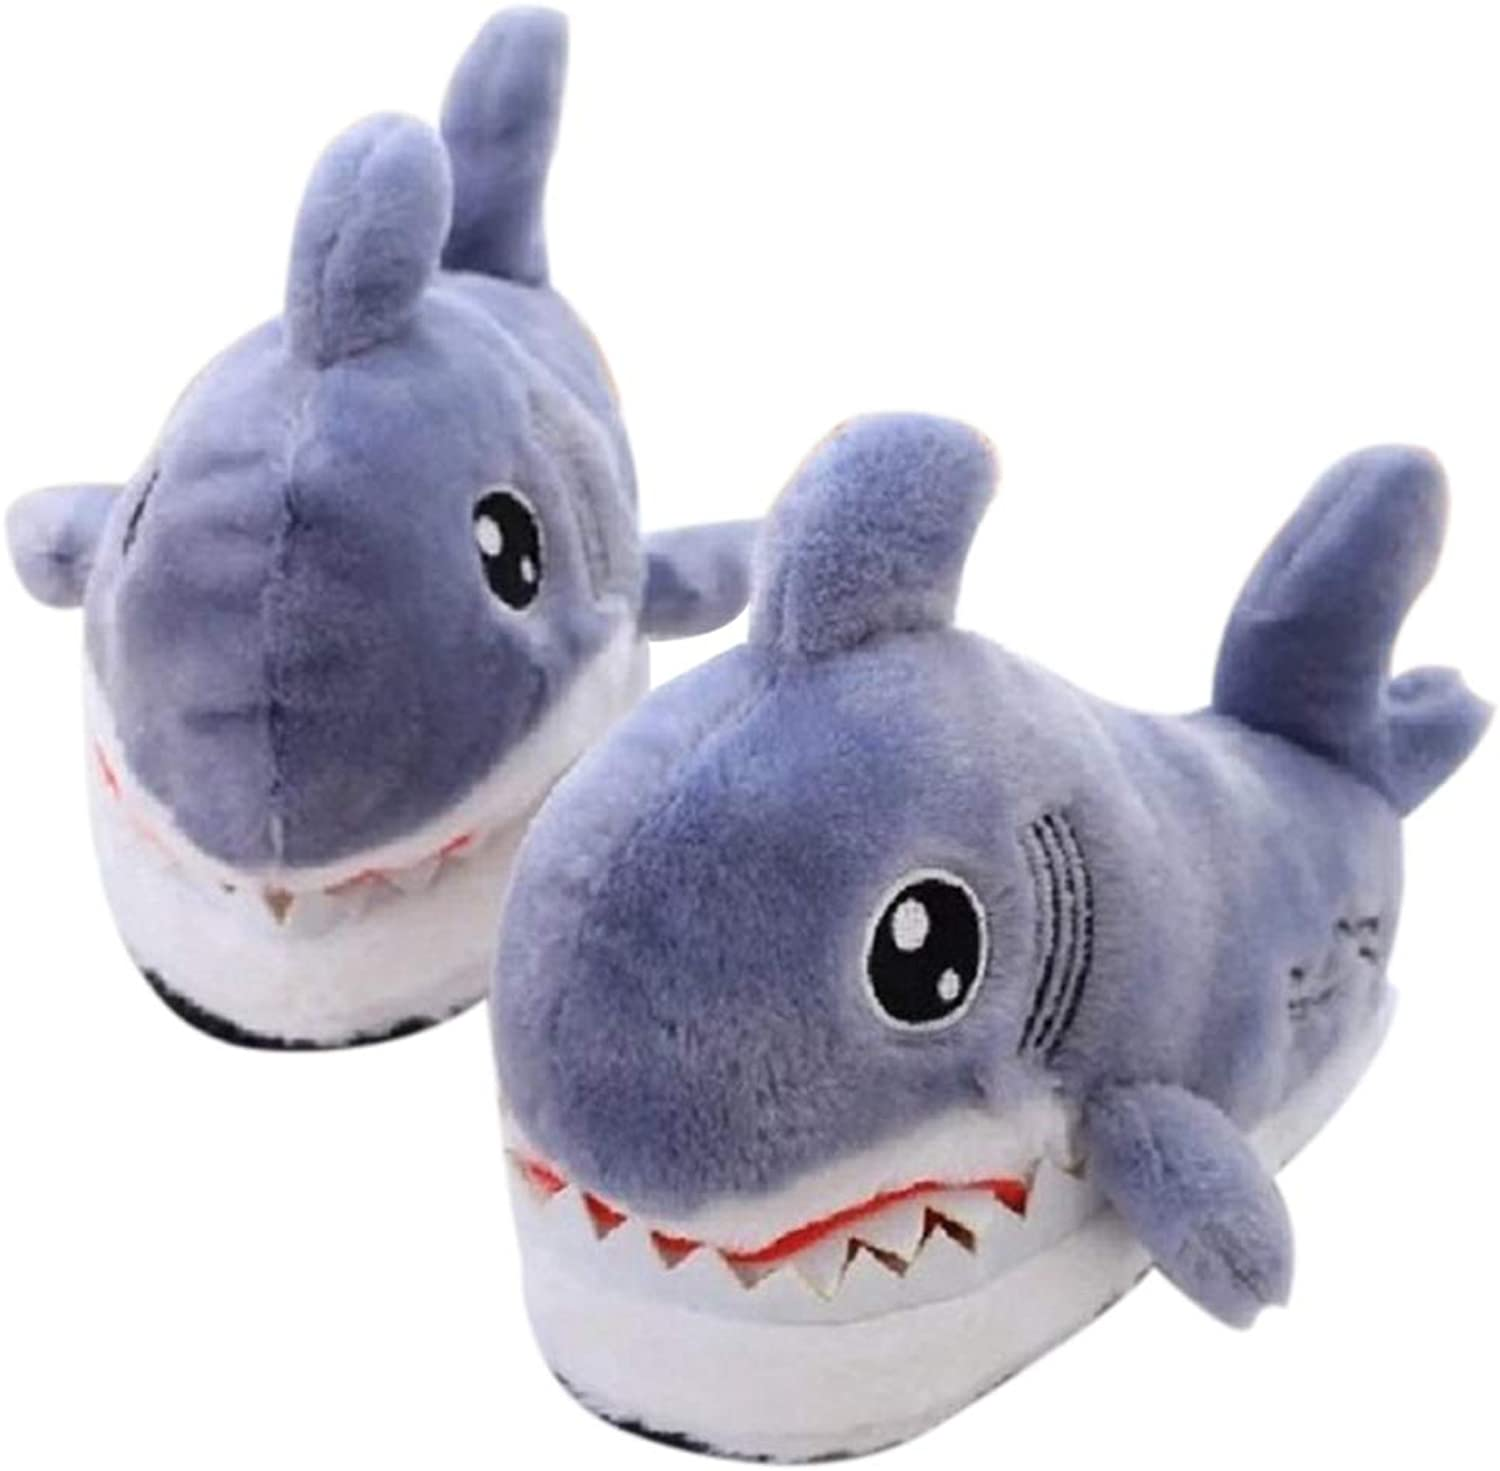 Nafanio Cute Flock Plush Boots Indoor Shark Slippers Unisex Winter Animal Prints Furry Grey Fluffy Home Fuzzy House shoes